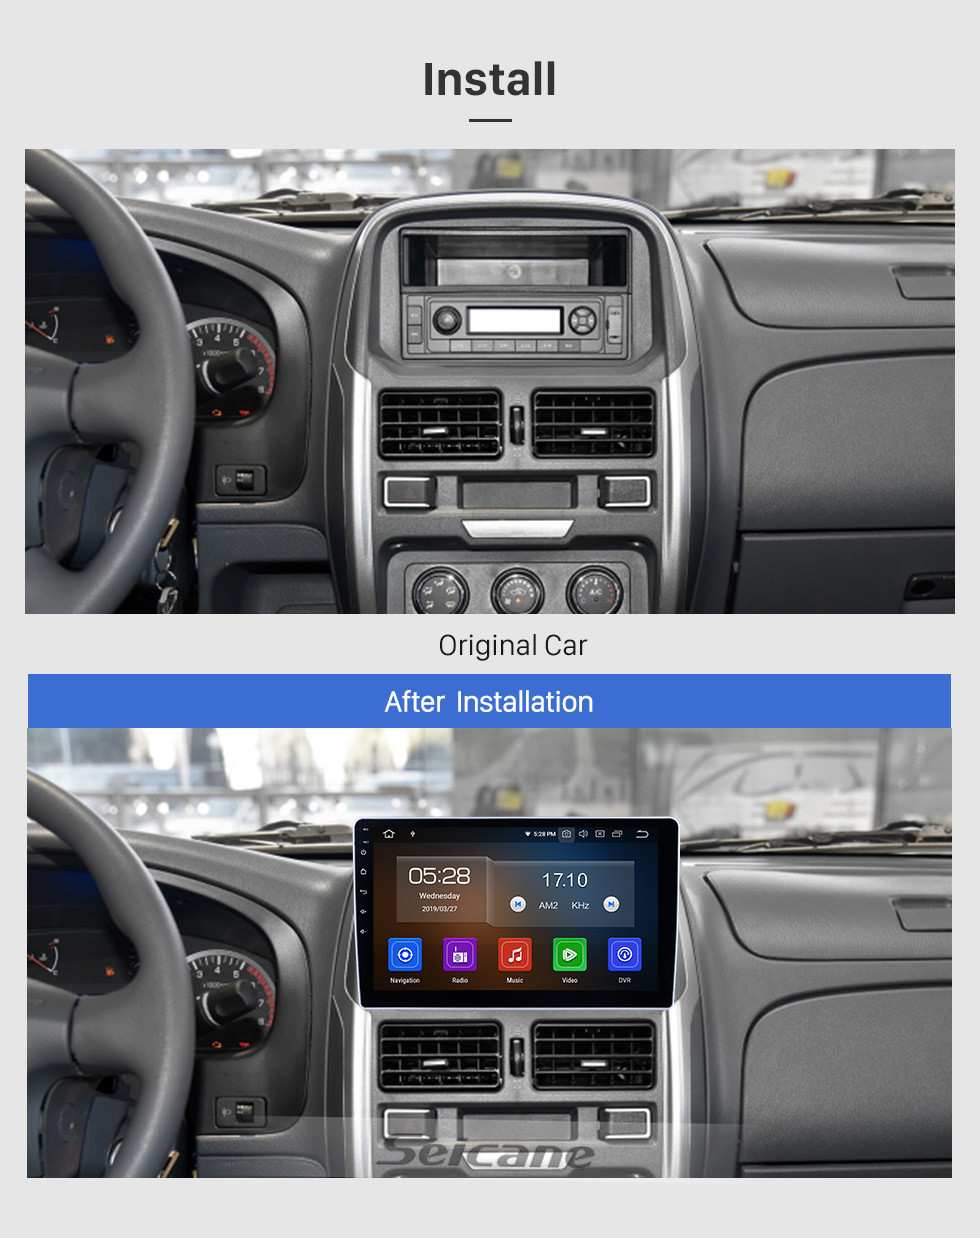 Seicane HD Touchscreen for 2015 2016 2017 Dongfeng Ruiqi Radio Android 10.0 10.1 inch GPS Navigation System Bluetooth WIFI Carplay support DAB+